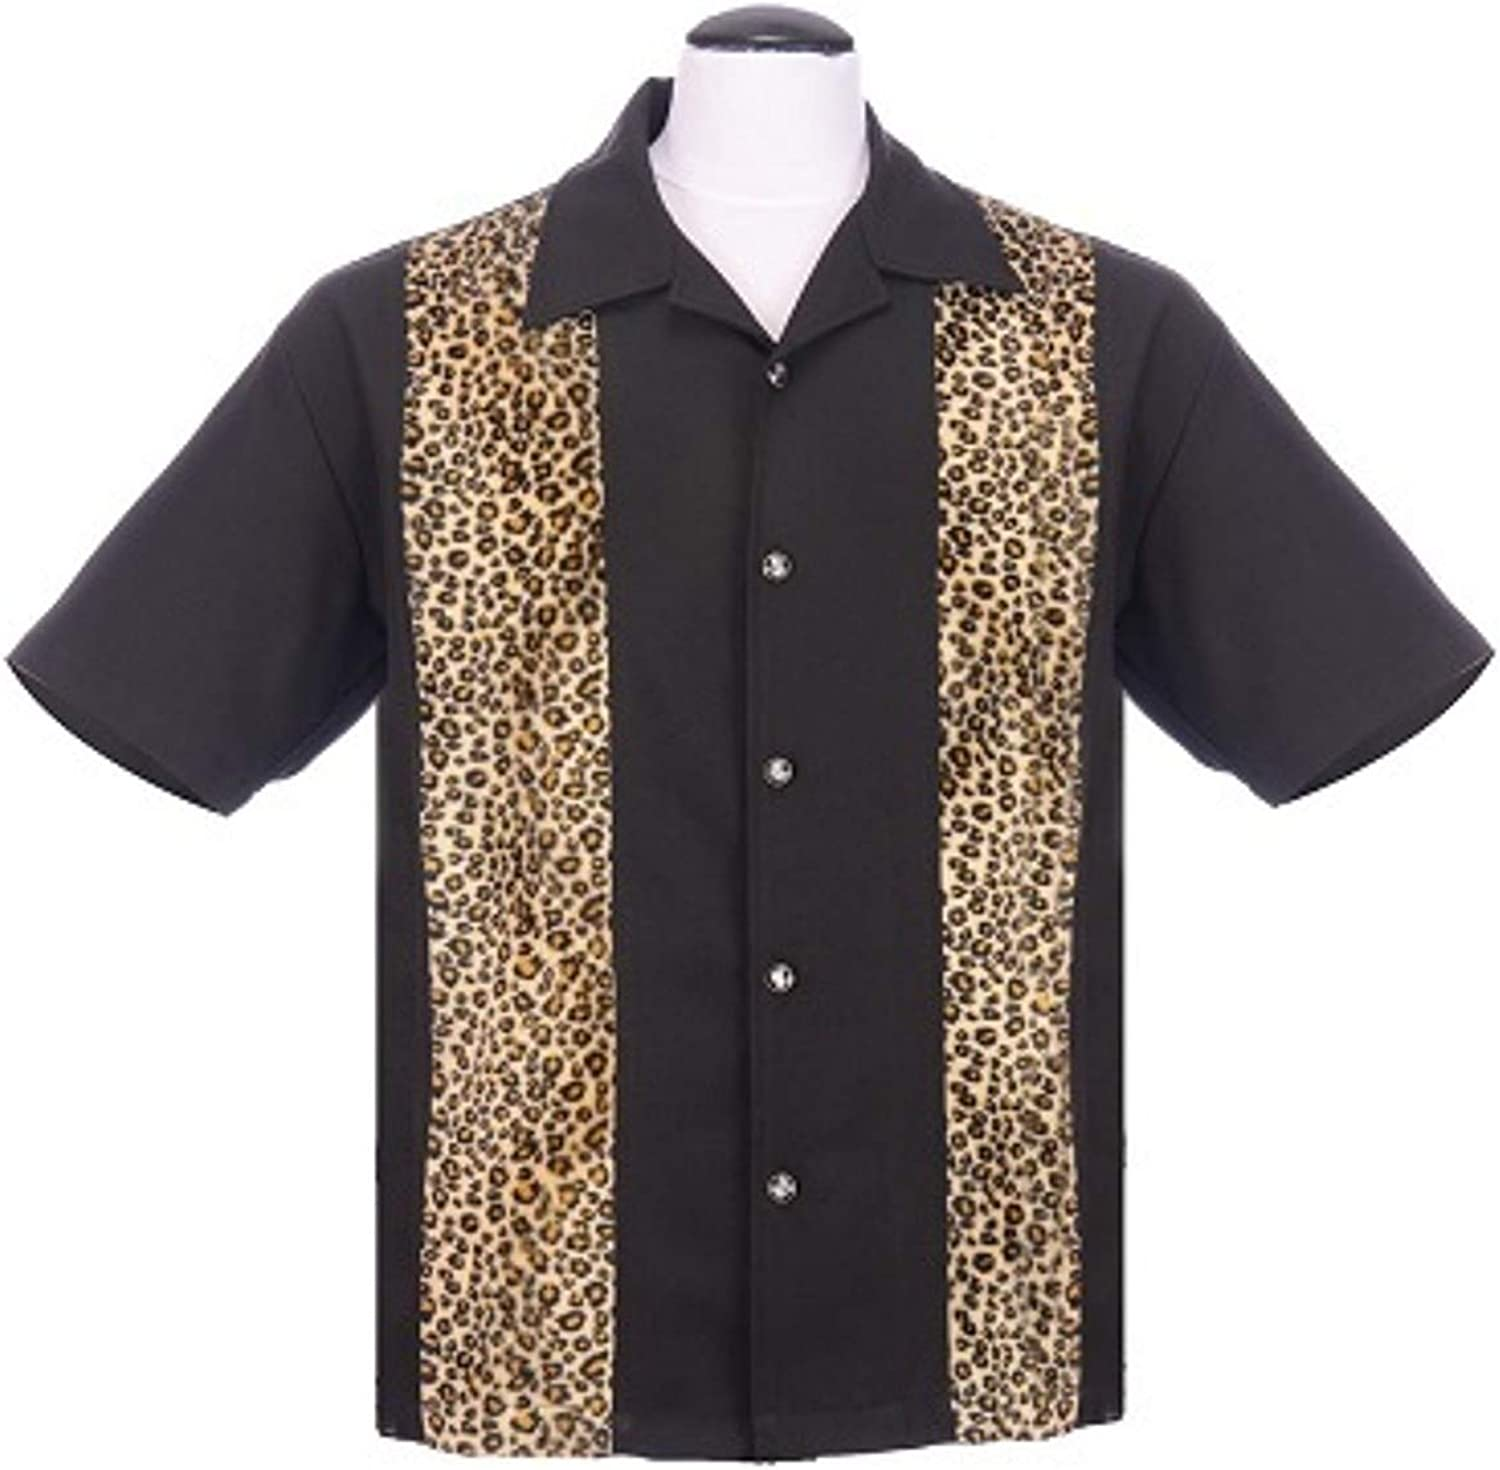 Steady Clothing Leopard Panel Men/'s Button Up Shirt in Black Un-tucked Style